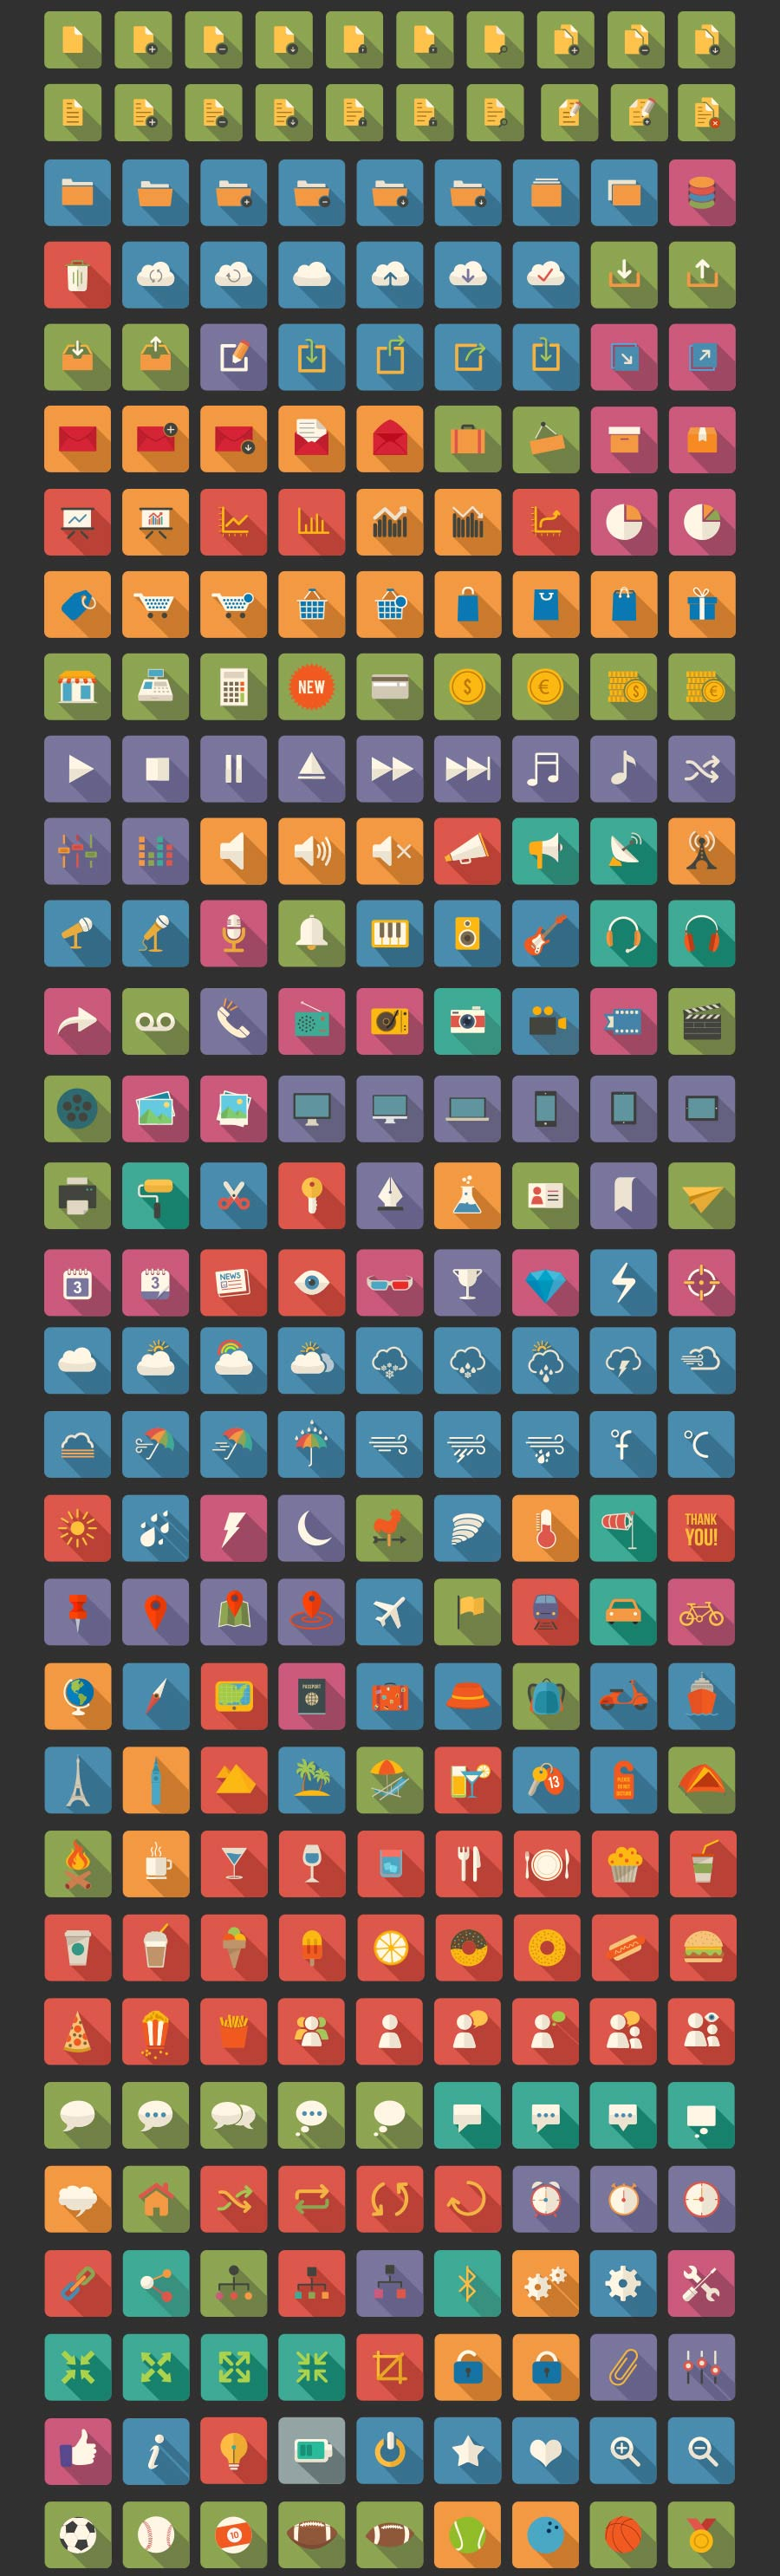 icons-square-long